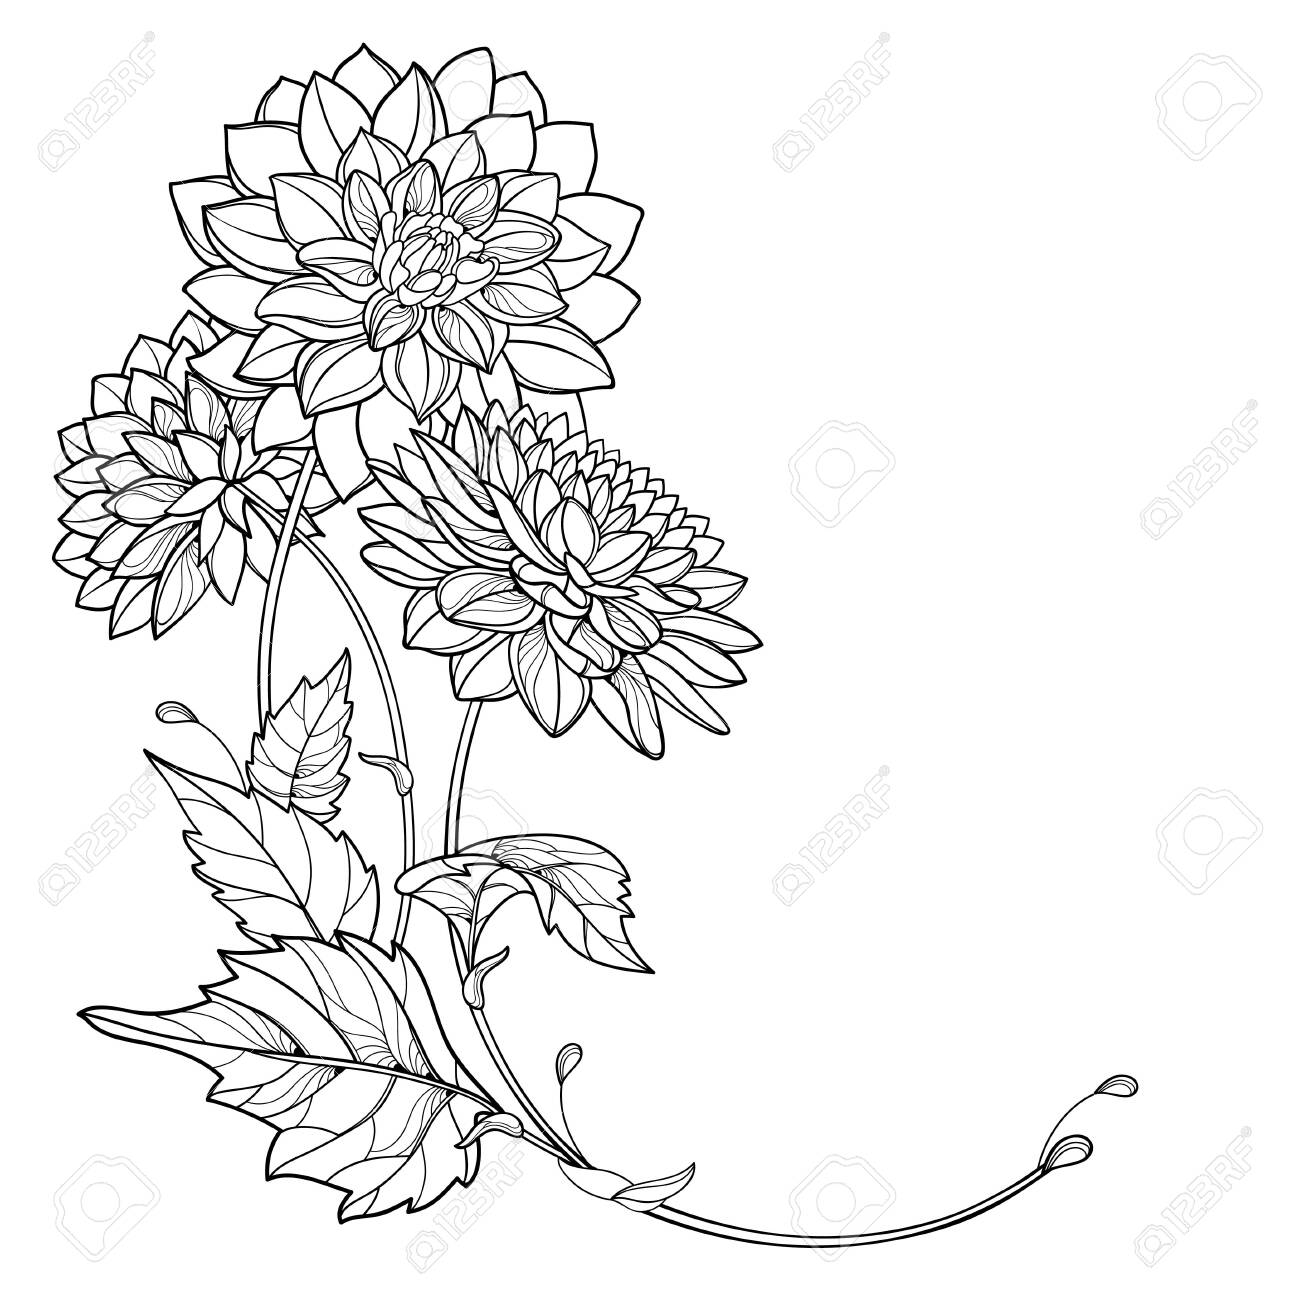 CLIPART DAHLIA FLOWER SKETCH STYLE | Royalty free vector design | Flower  sketches, Flower art, Flower drawing